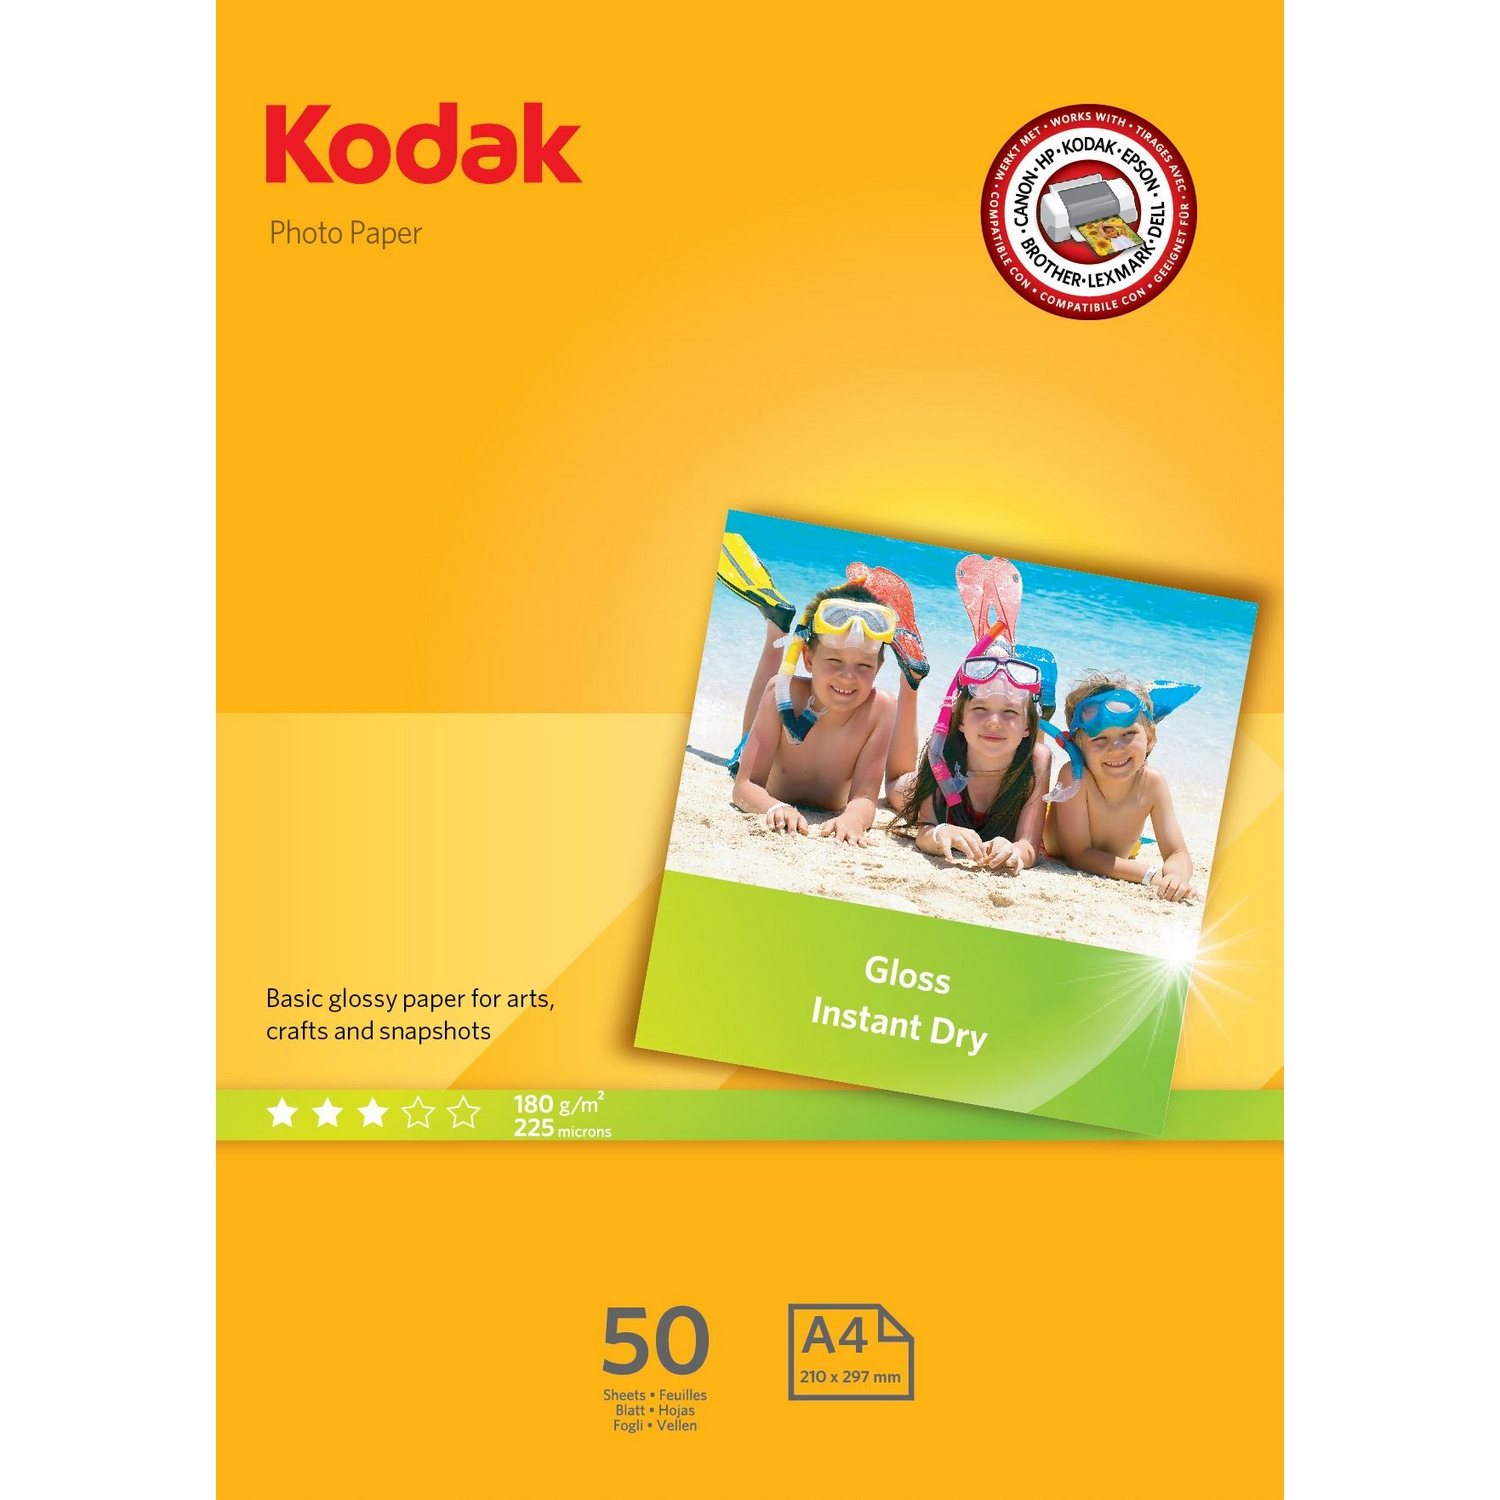 Original Kodak 180gsm A4 Gloss Photo Paper - 50 Sheets (5740-513)